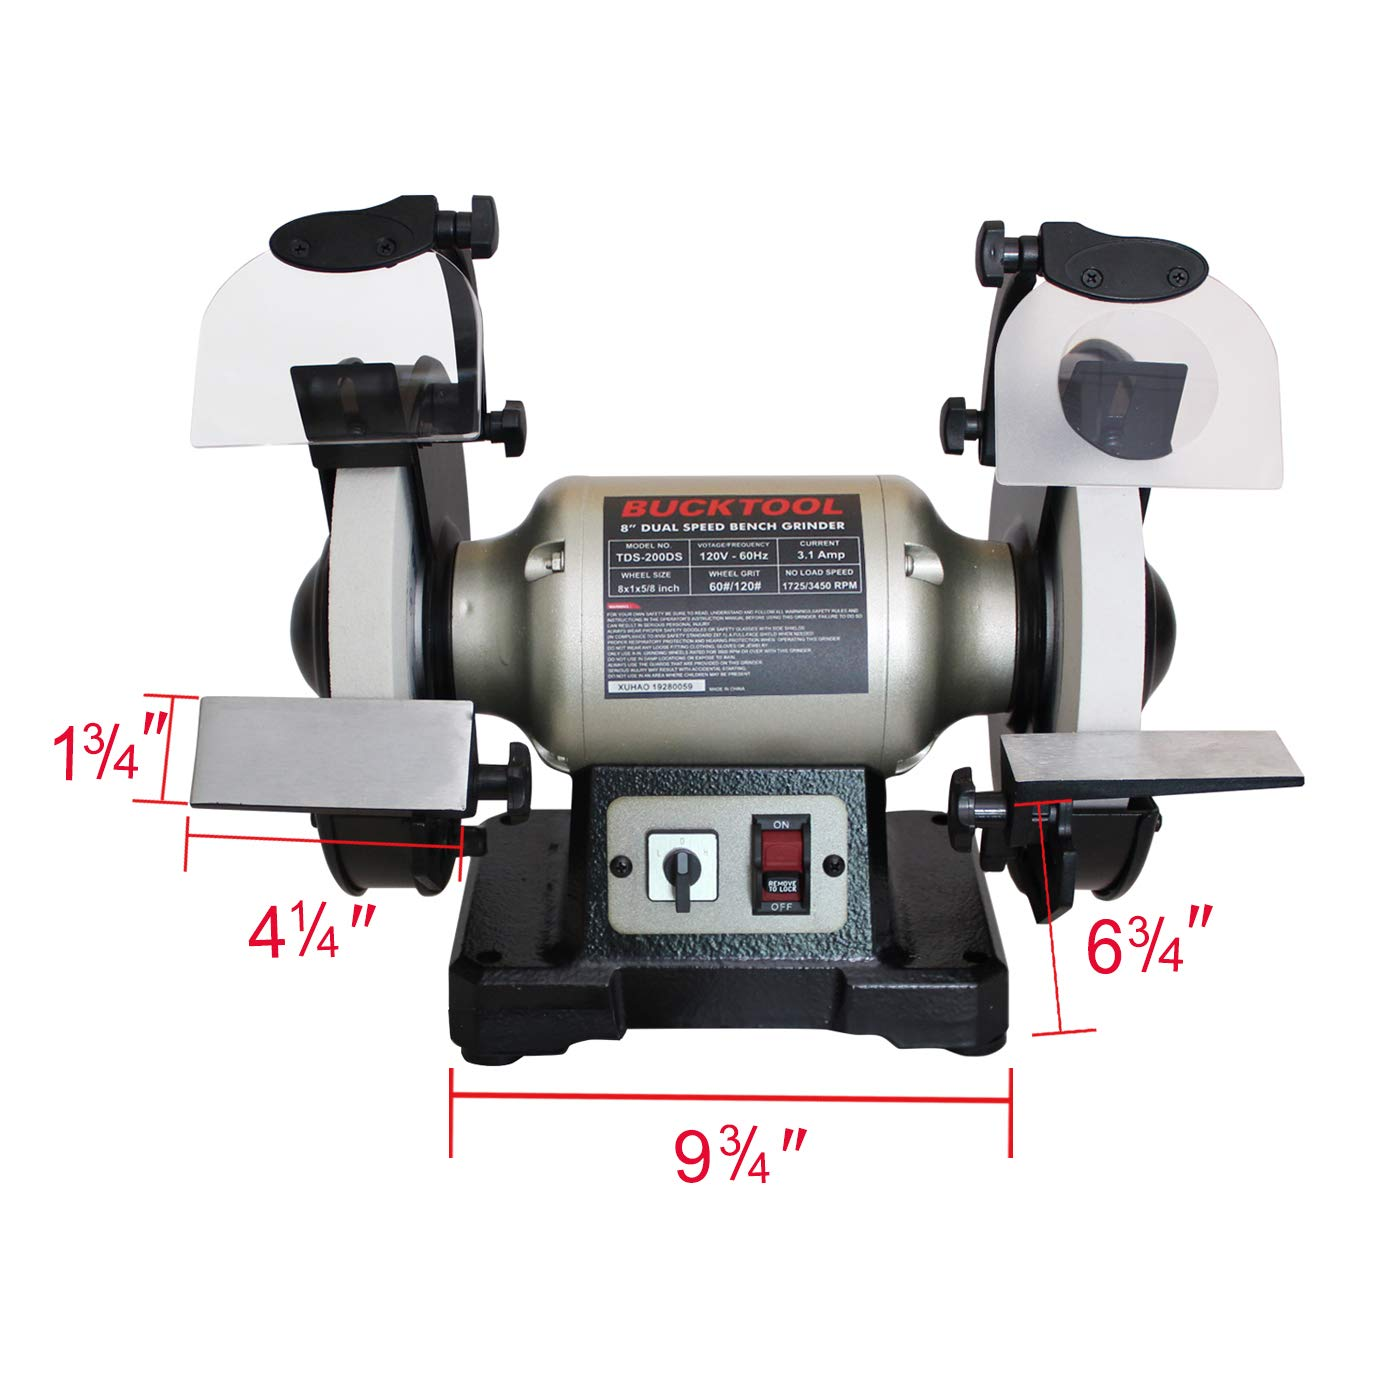 Incredible Bucktool Professional Power Tools 8 Inch Dual Speed Cast Iron Base Bench Grinder Dailytribune Chair Design For Home Dailytribuneorg